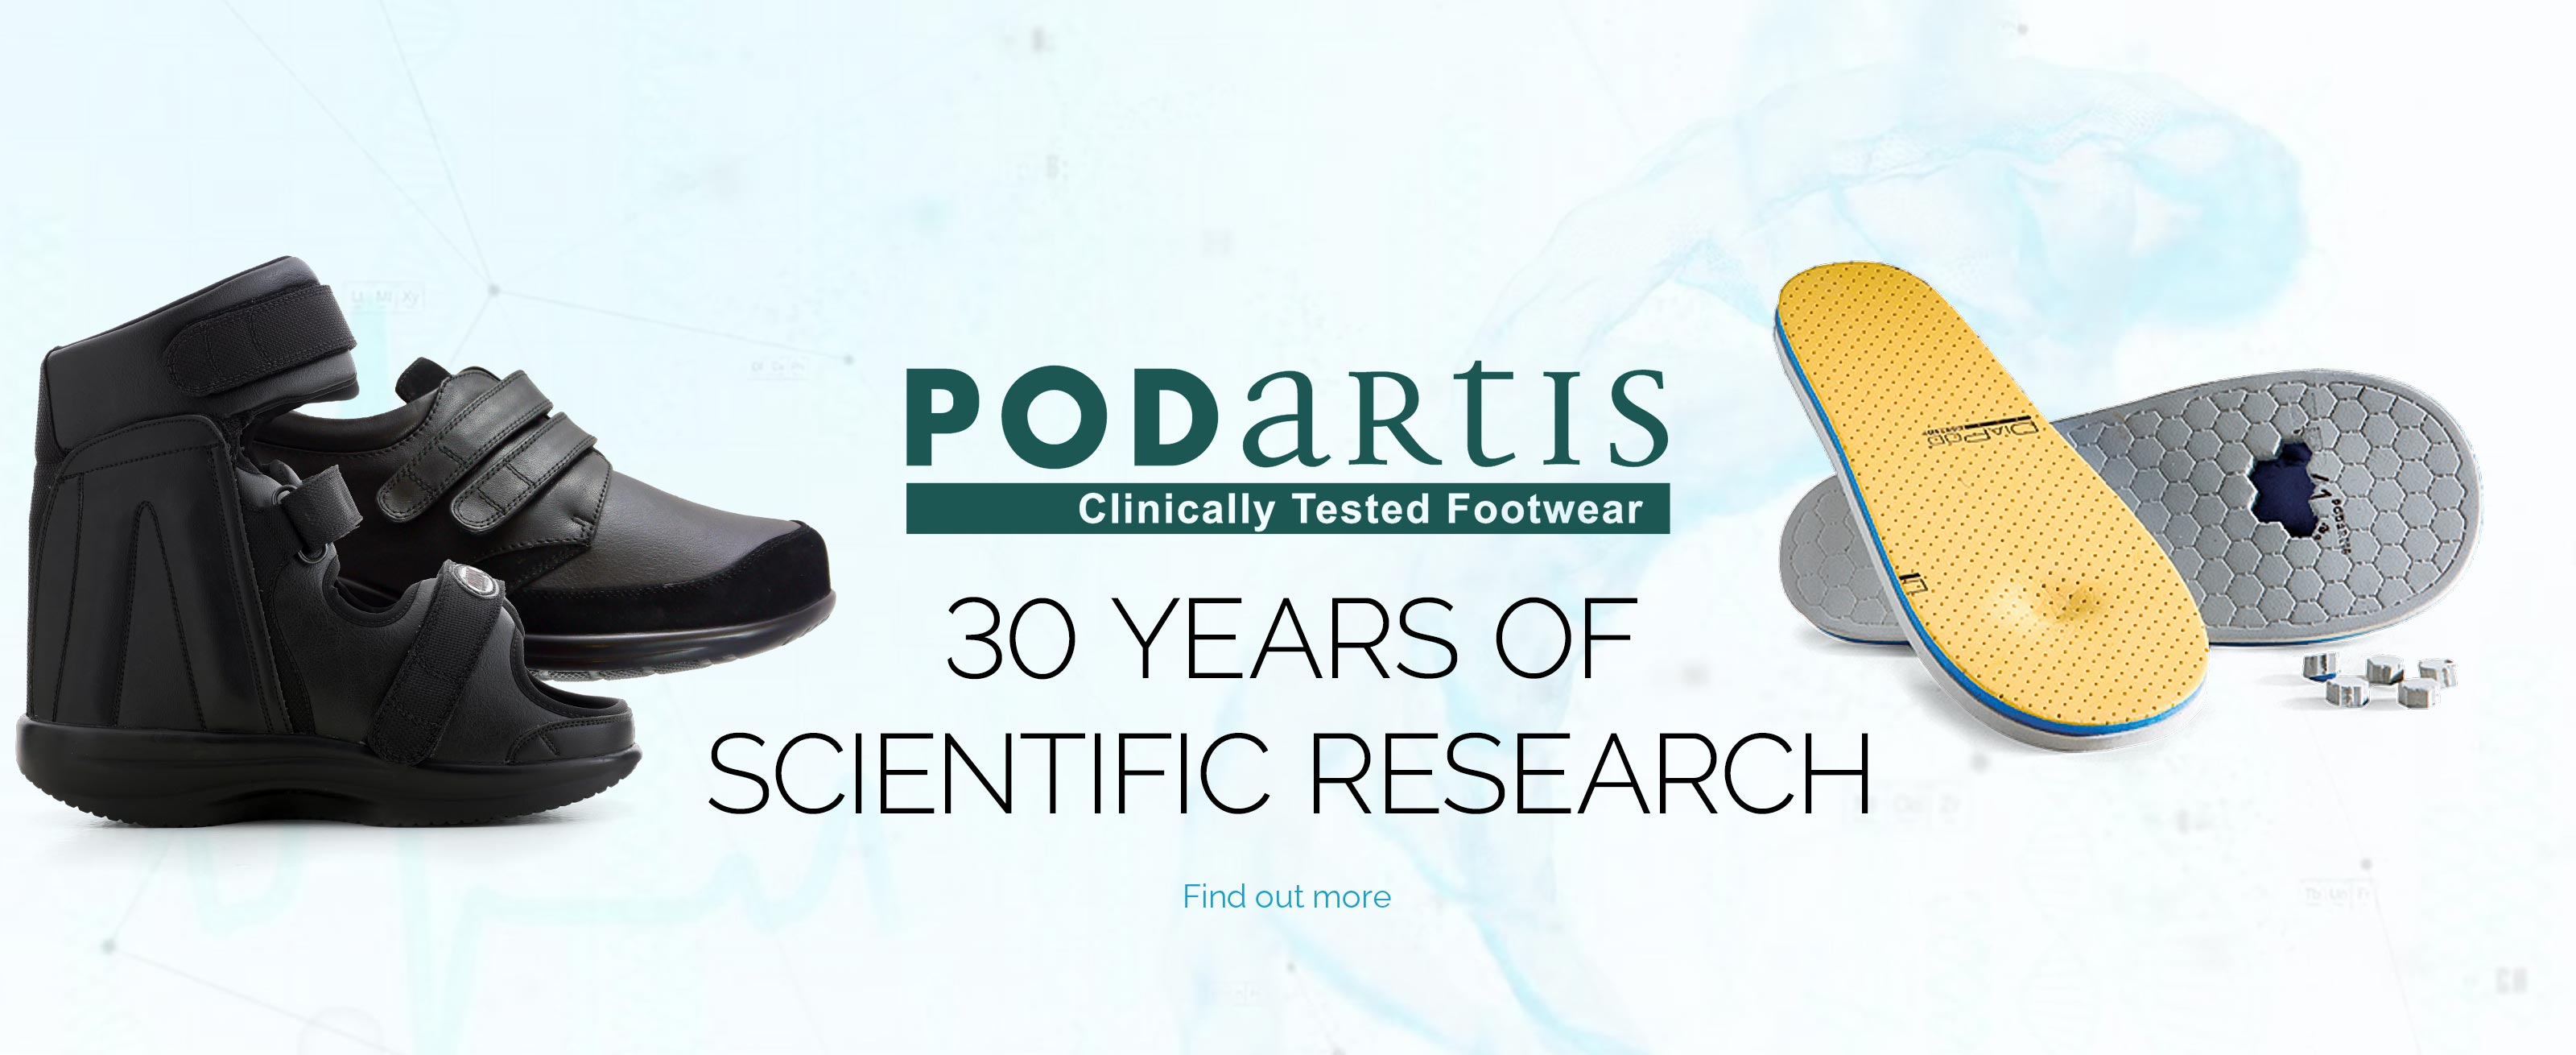 PODartis 30 Years of Scientific research